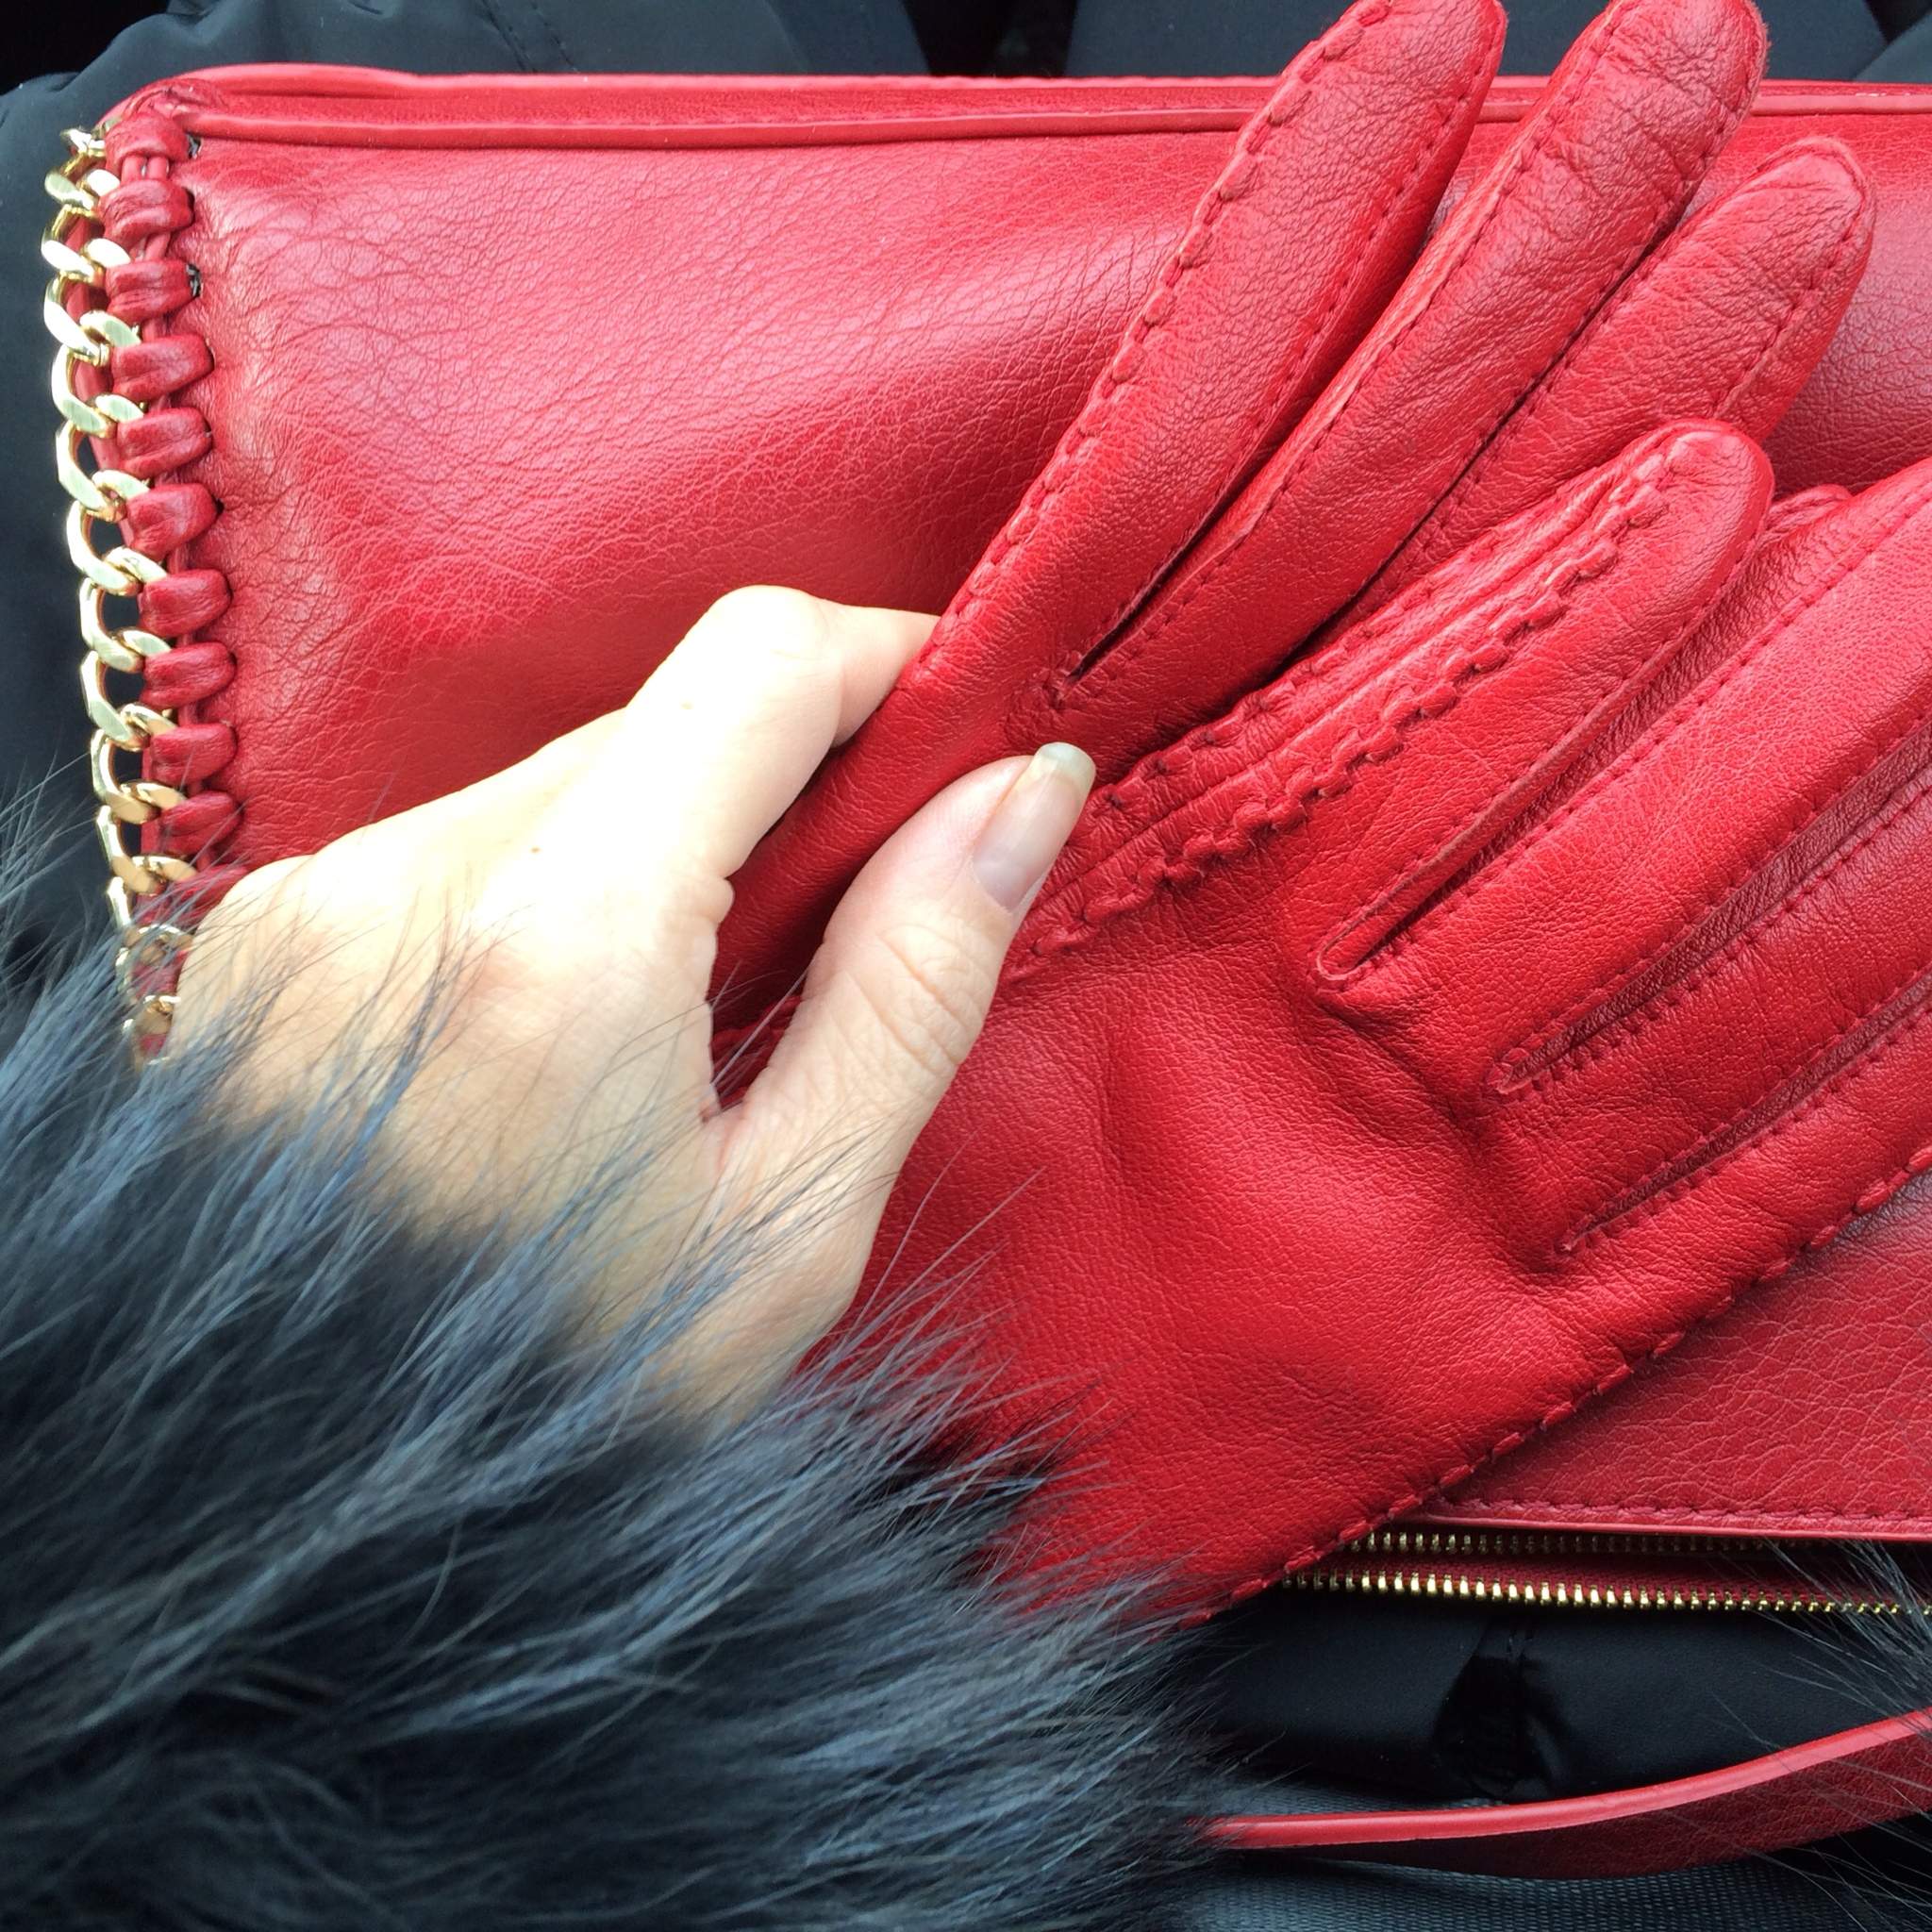 More color in my outfit of the day, redsymbolizing wealth and good fortune for the year ahead.